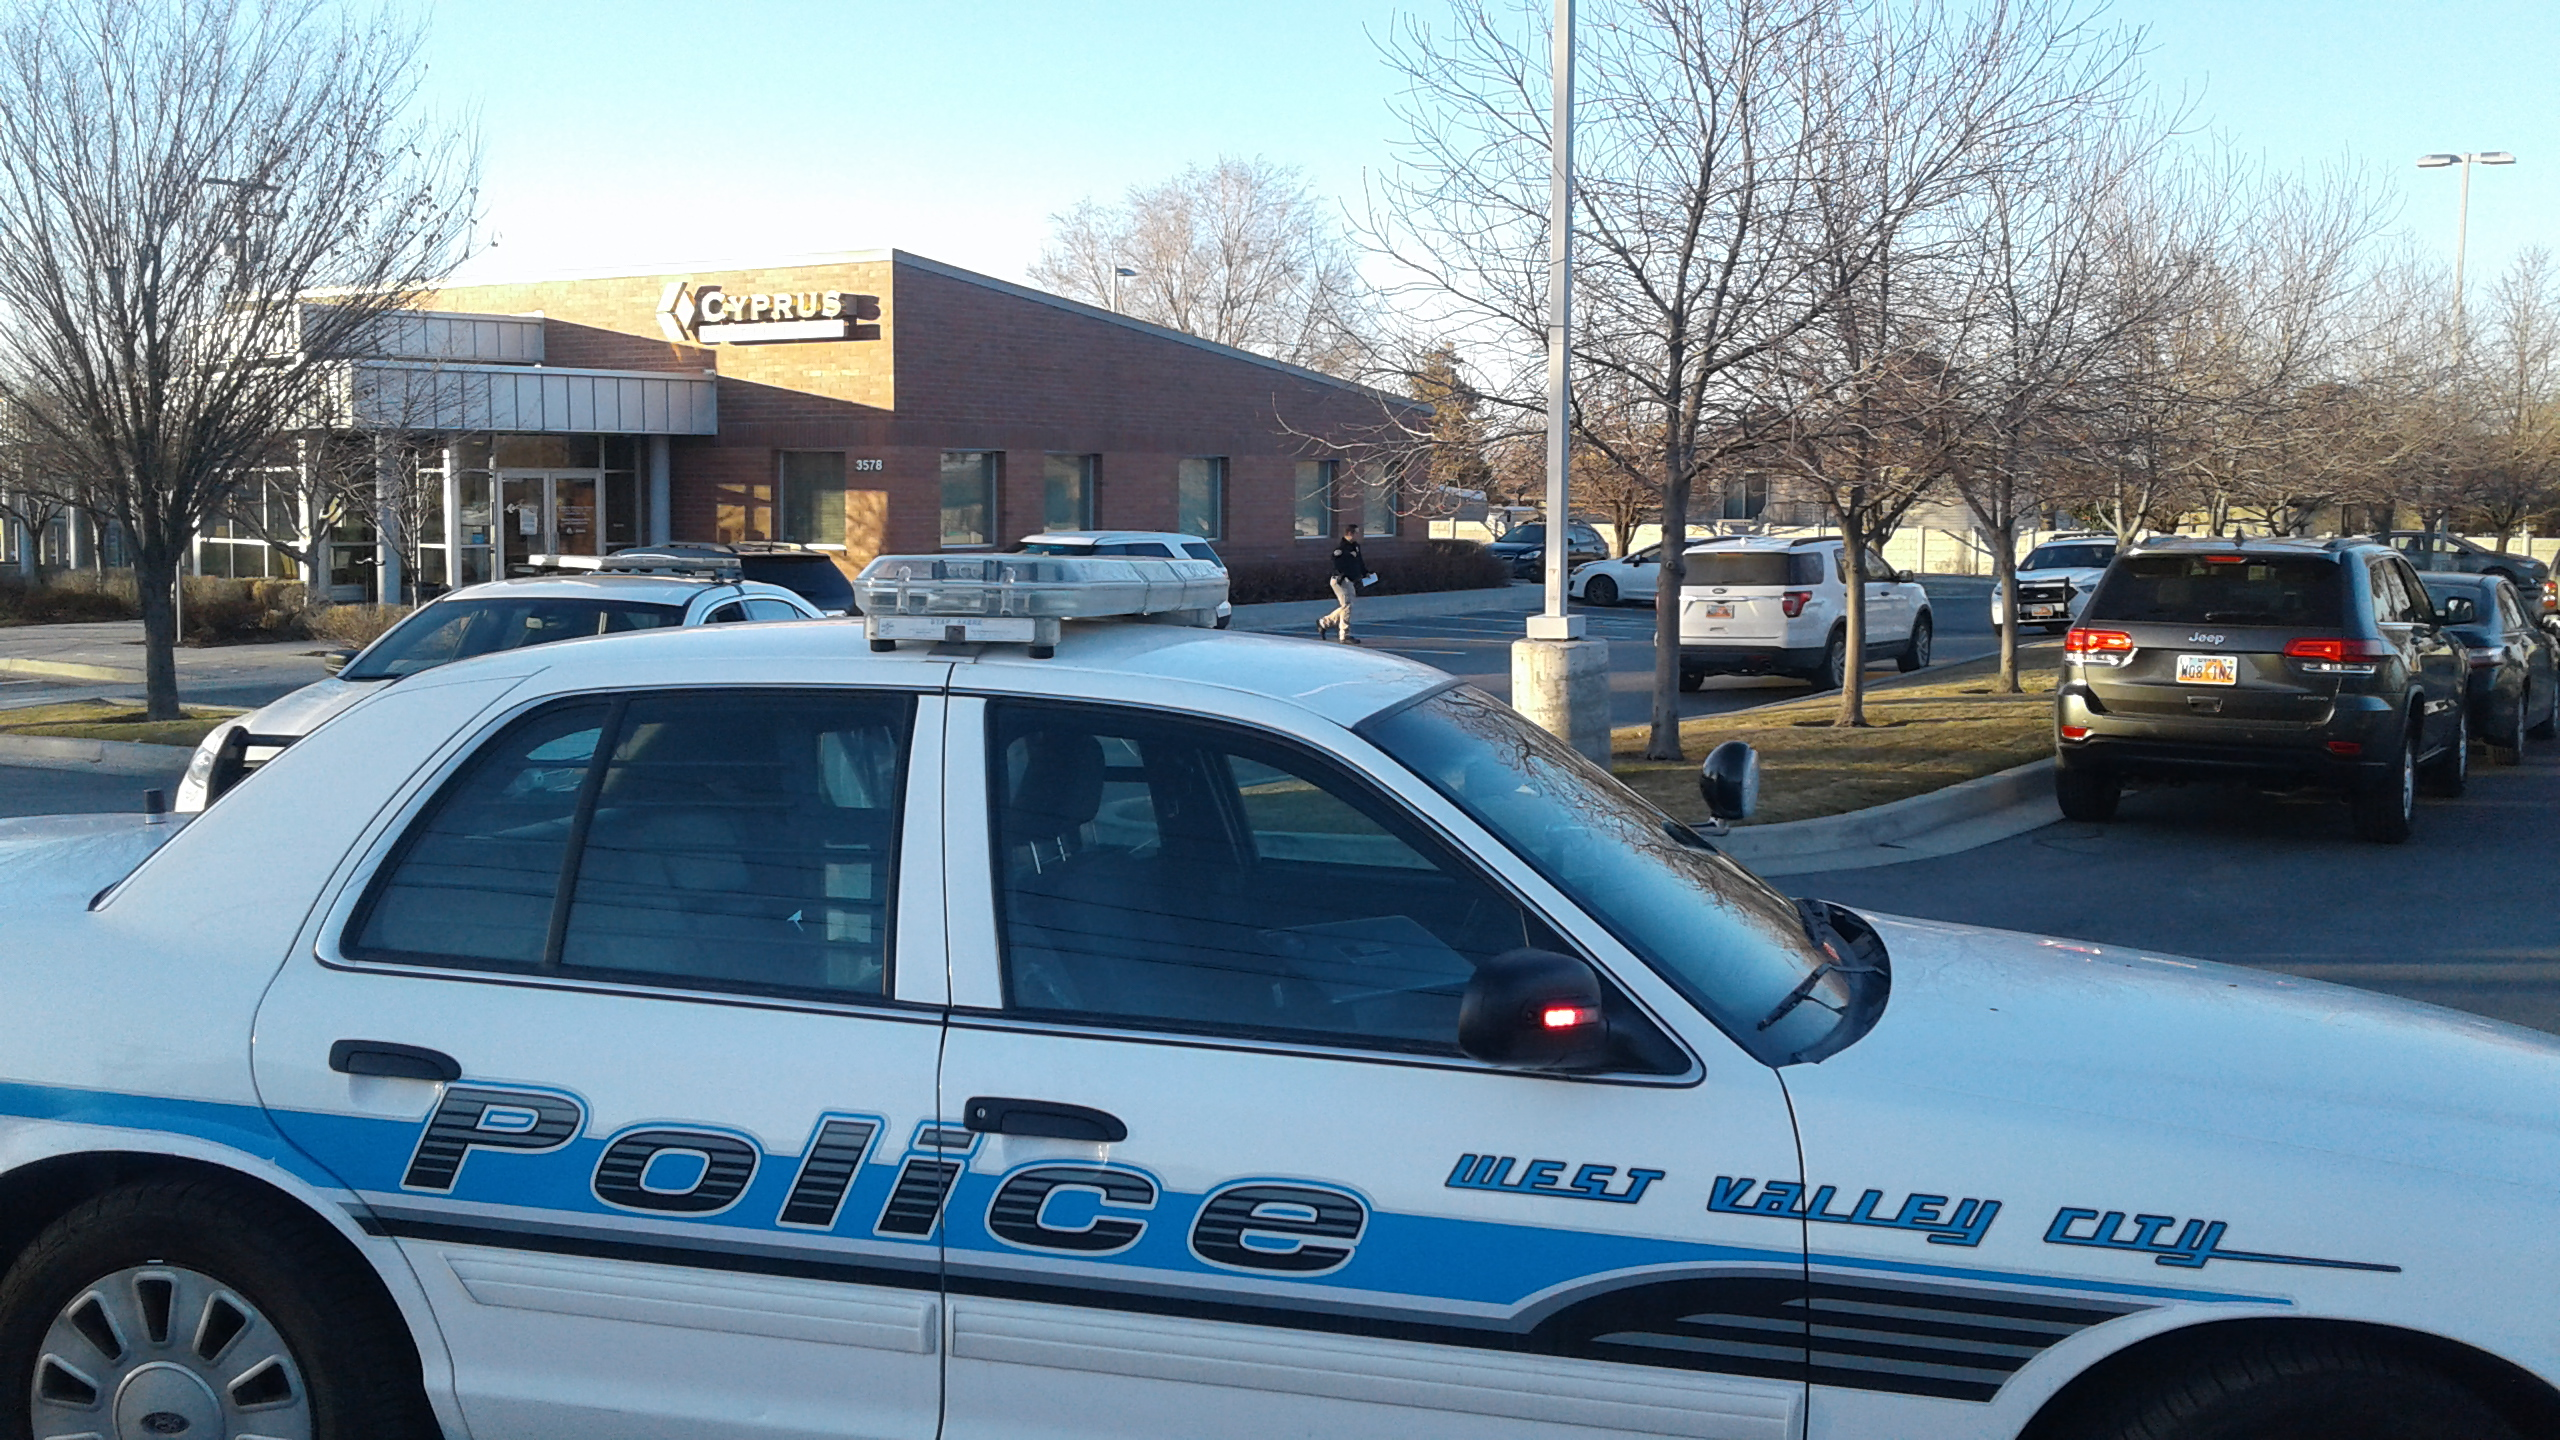 Credit union robbed in West Valley City